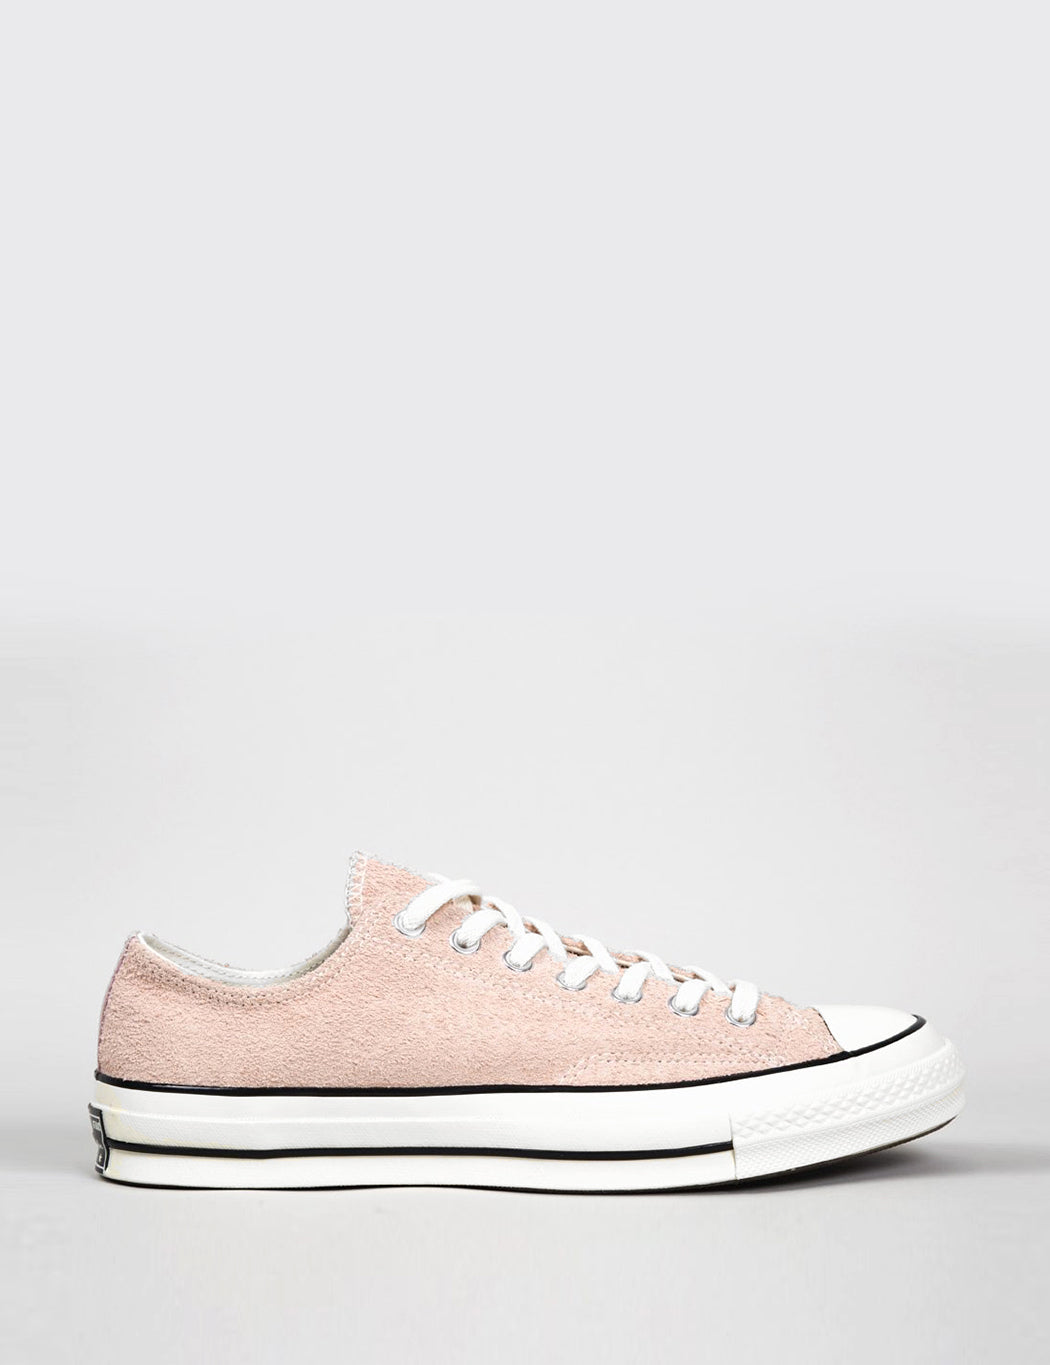 ... Converse 70's Chuck Taylor Low (Canvas) - Dust ...